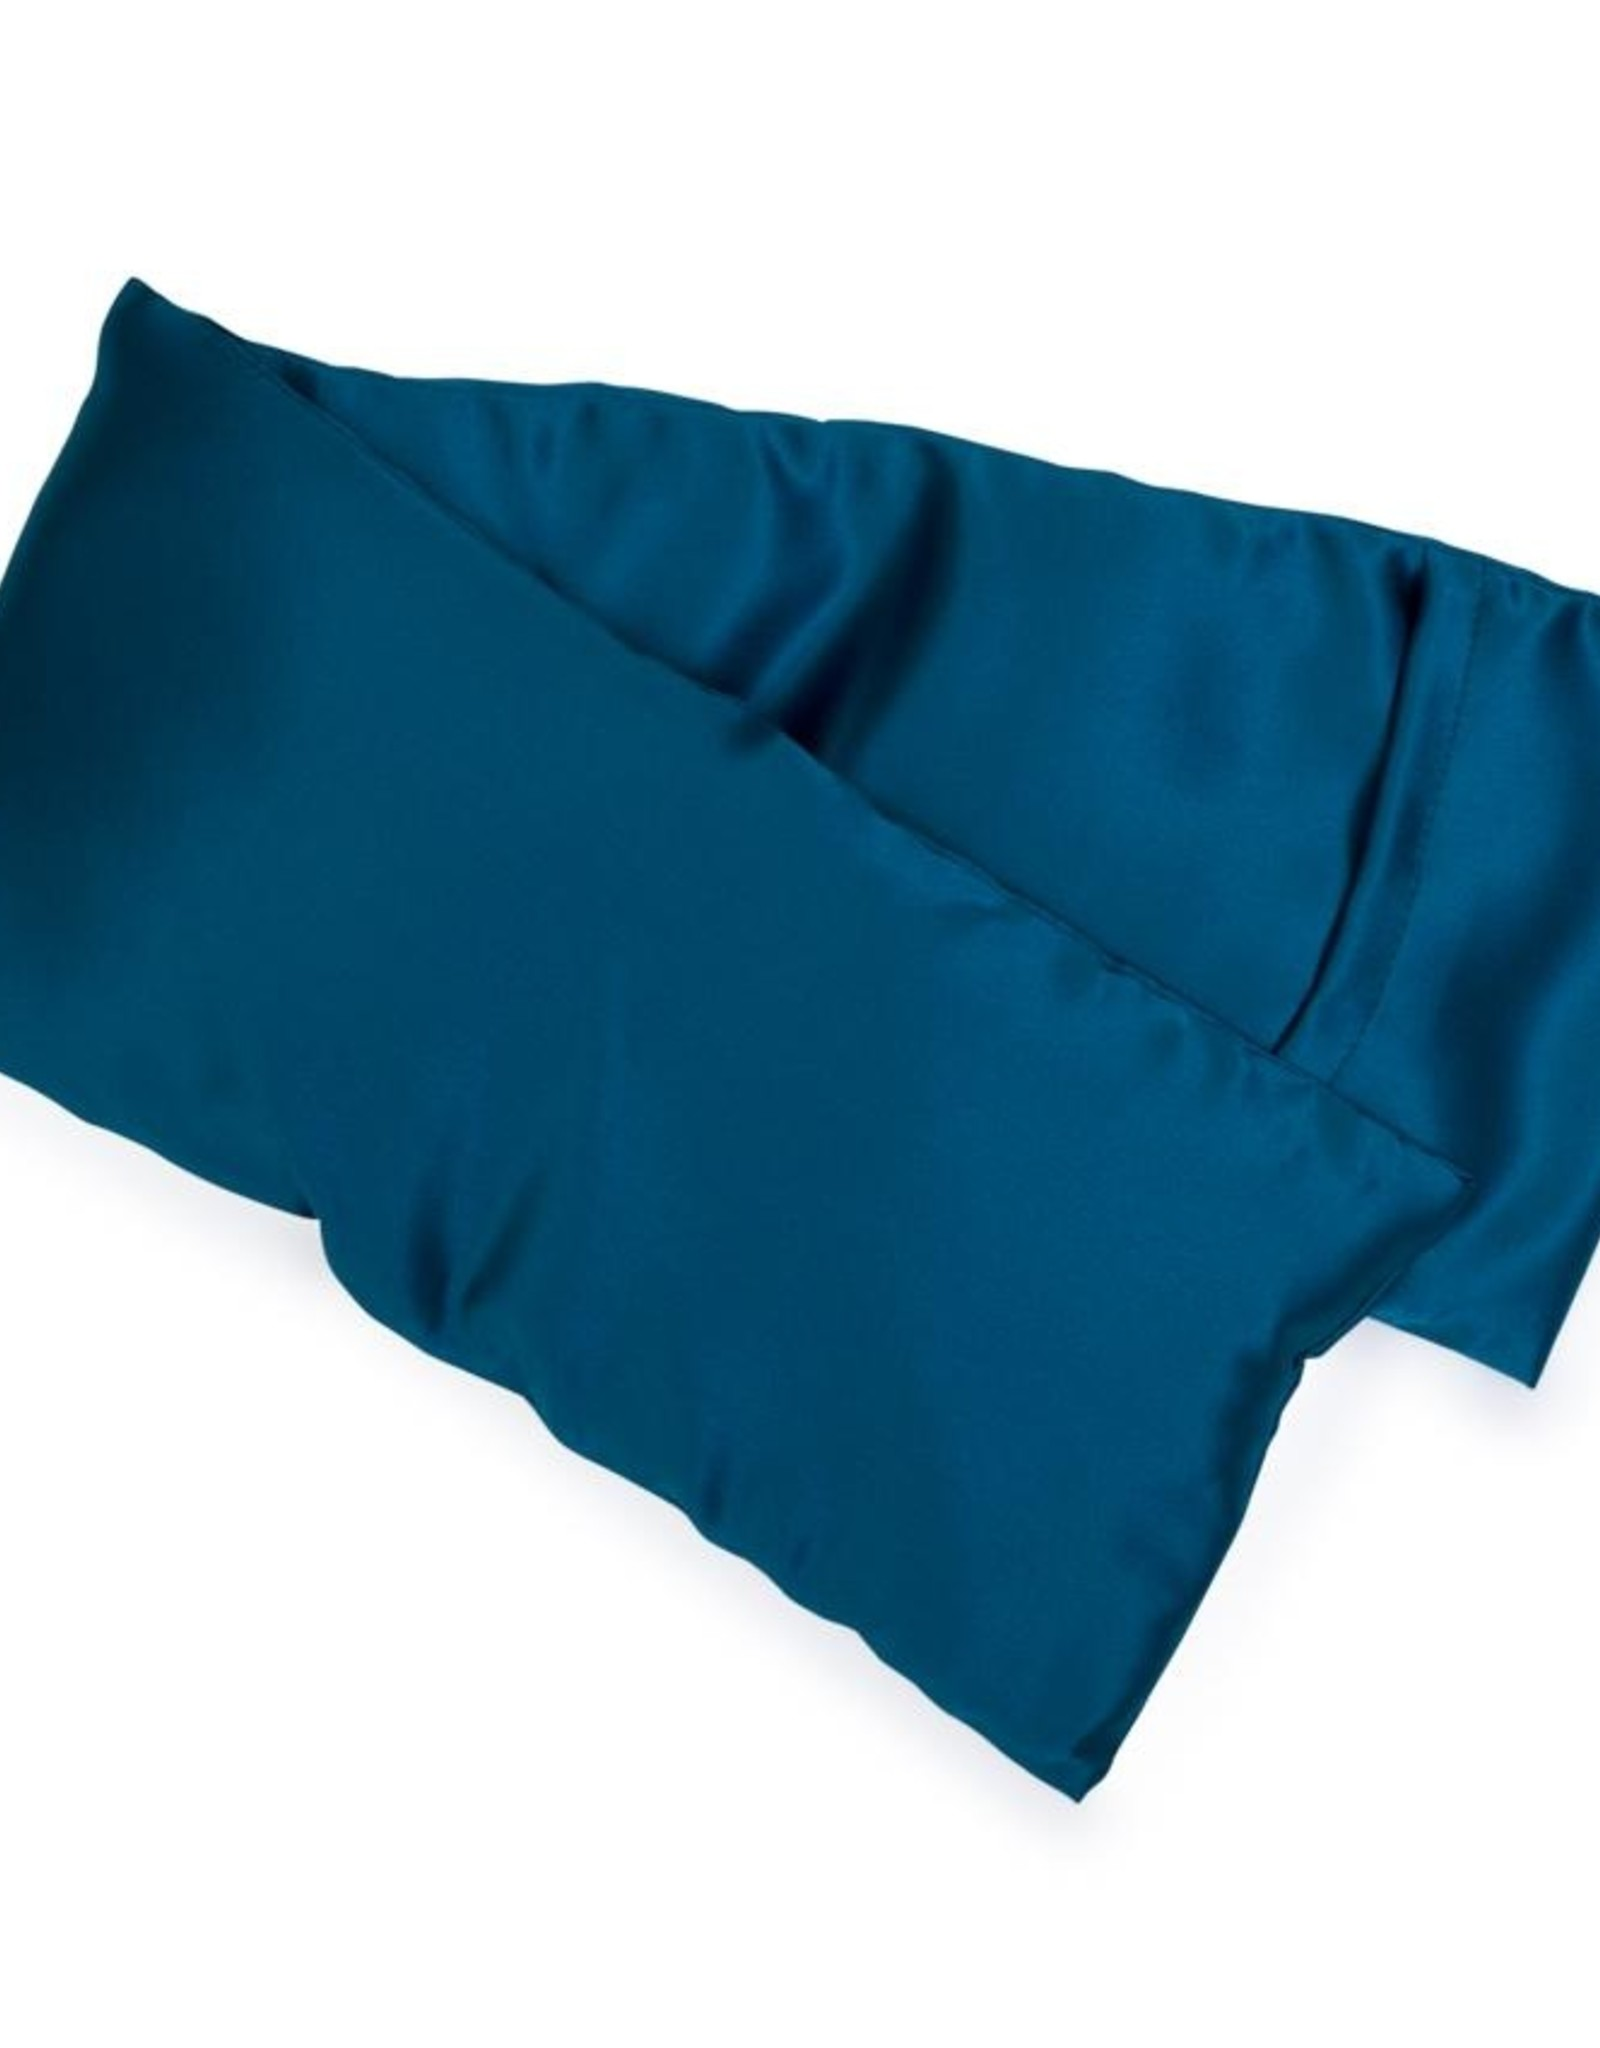 Elizabeth W Hot/Cold Flaxseed Pack, Teal Silk